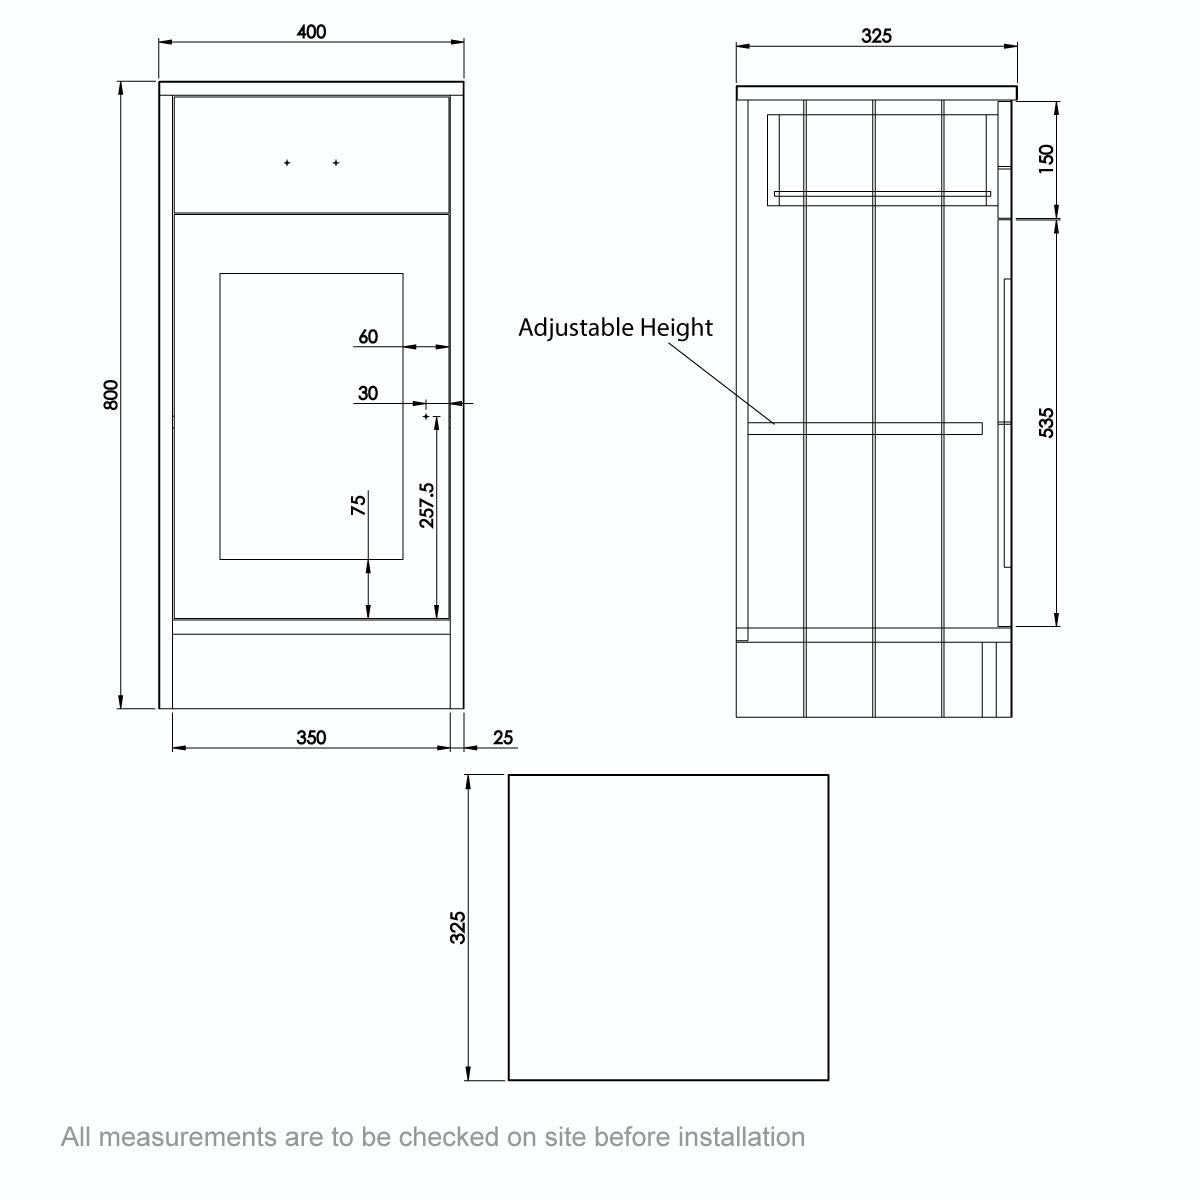 Dimensions for The Bath Co. Dulwich ivory storage unit